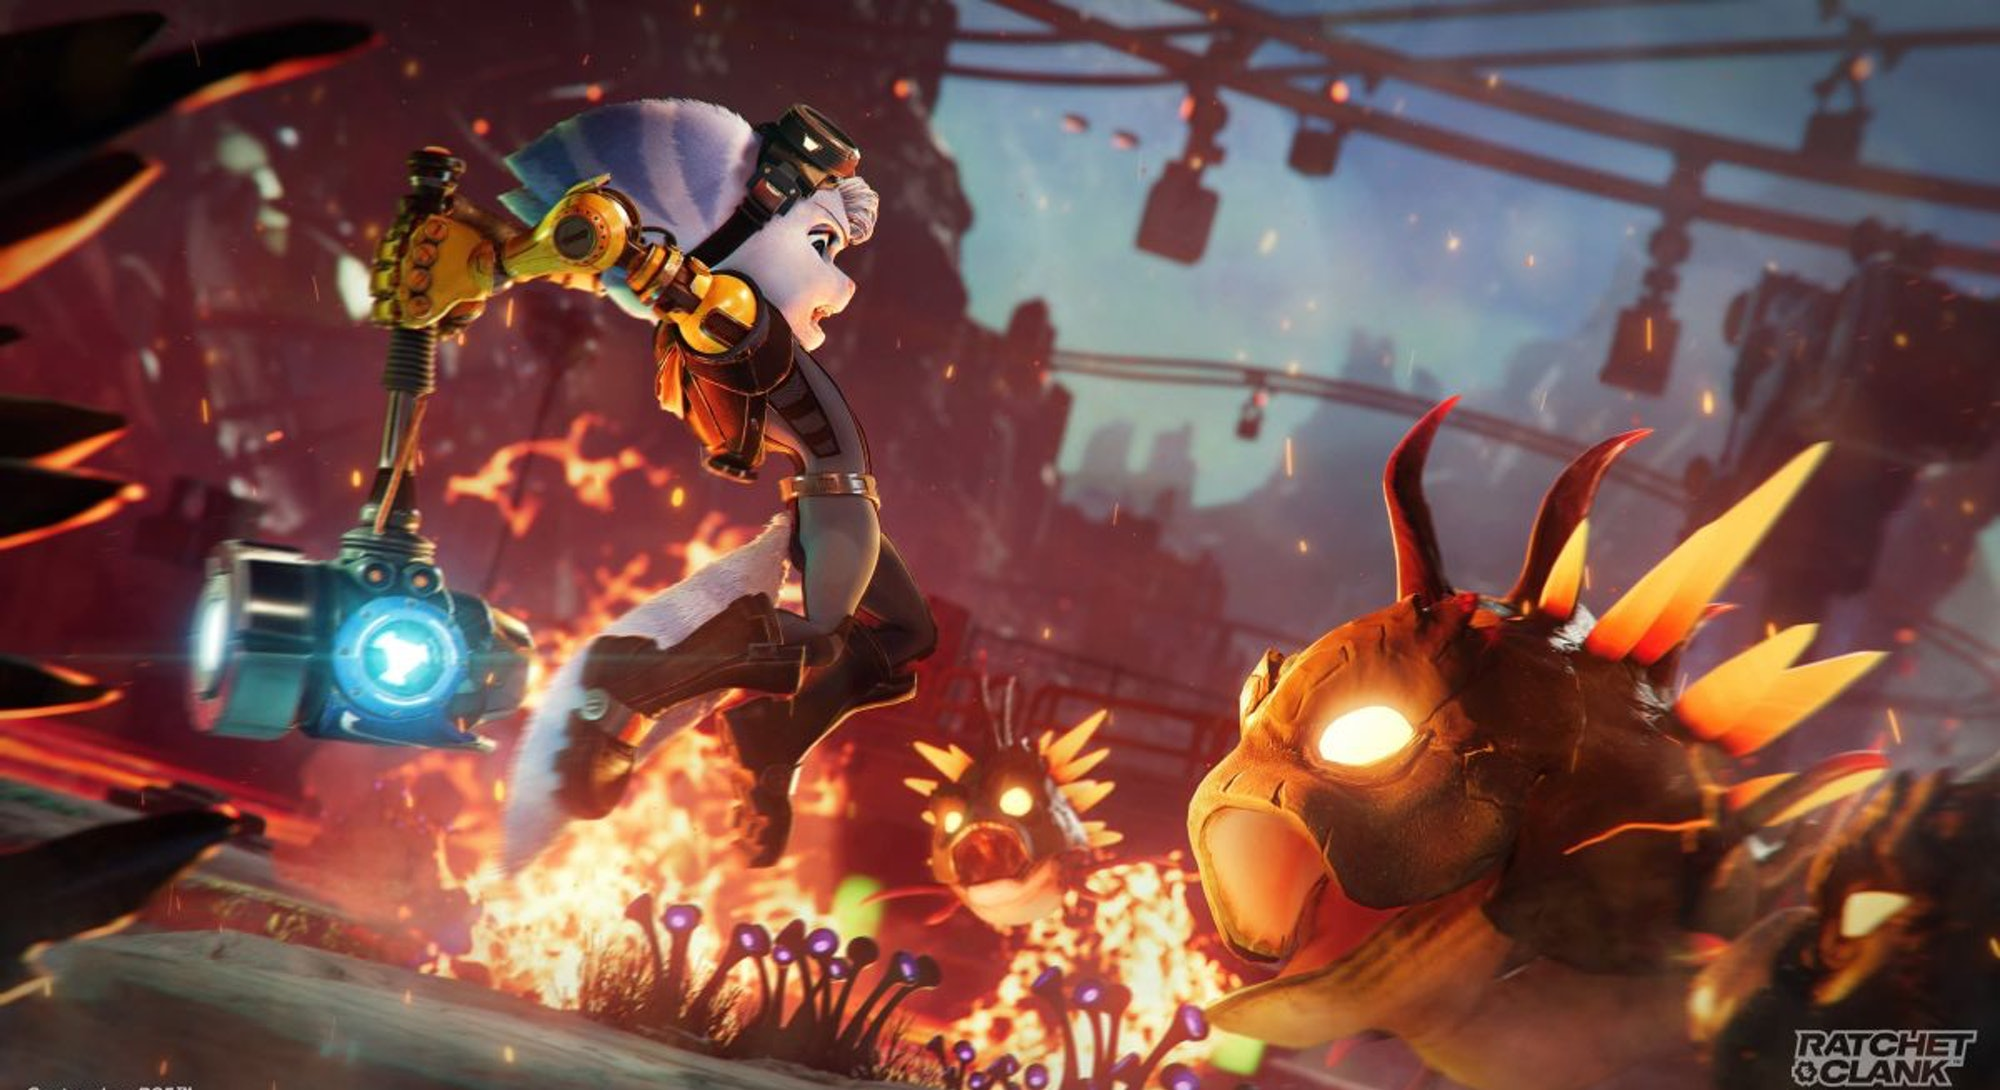 rivet jumping with hammer in ratchet and clank rift apart